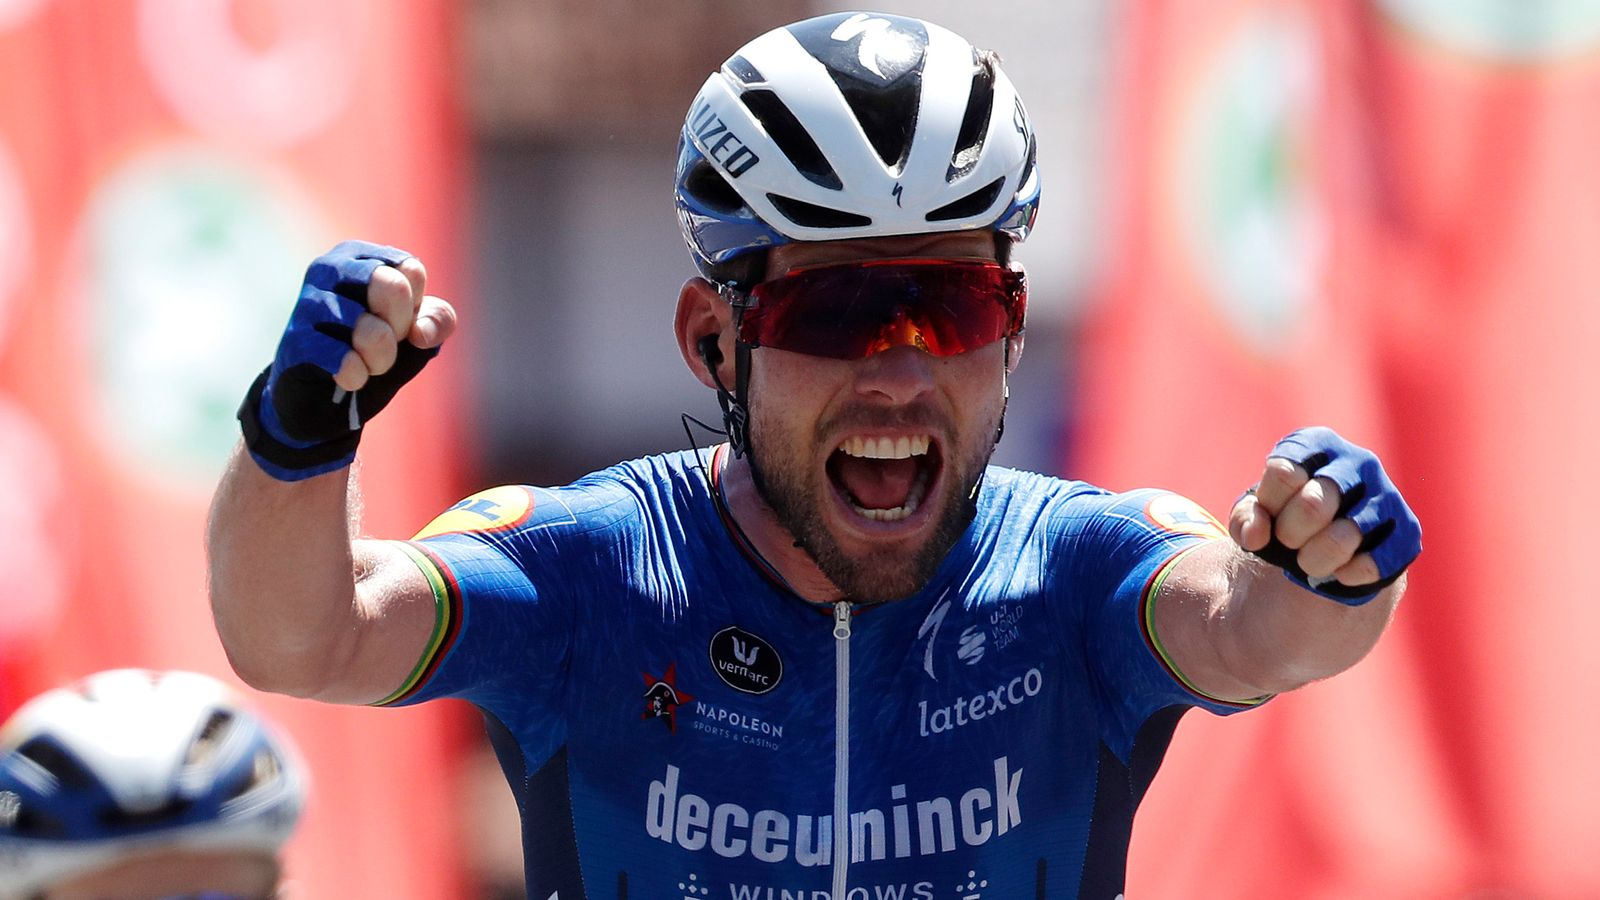 Mark Cavendish triumphs in final stage of Tour of Belgium with team-mate Remco Evenepoel overall winner